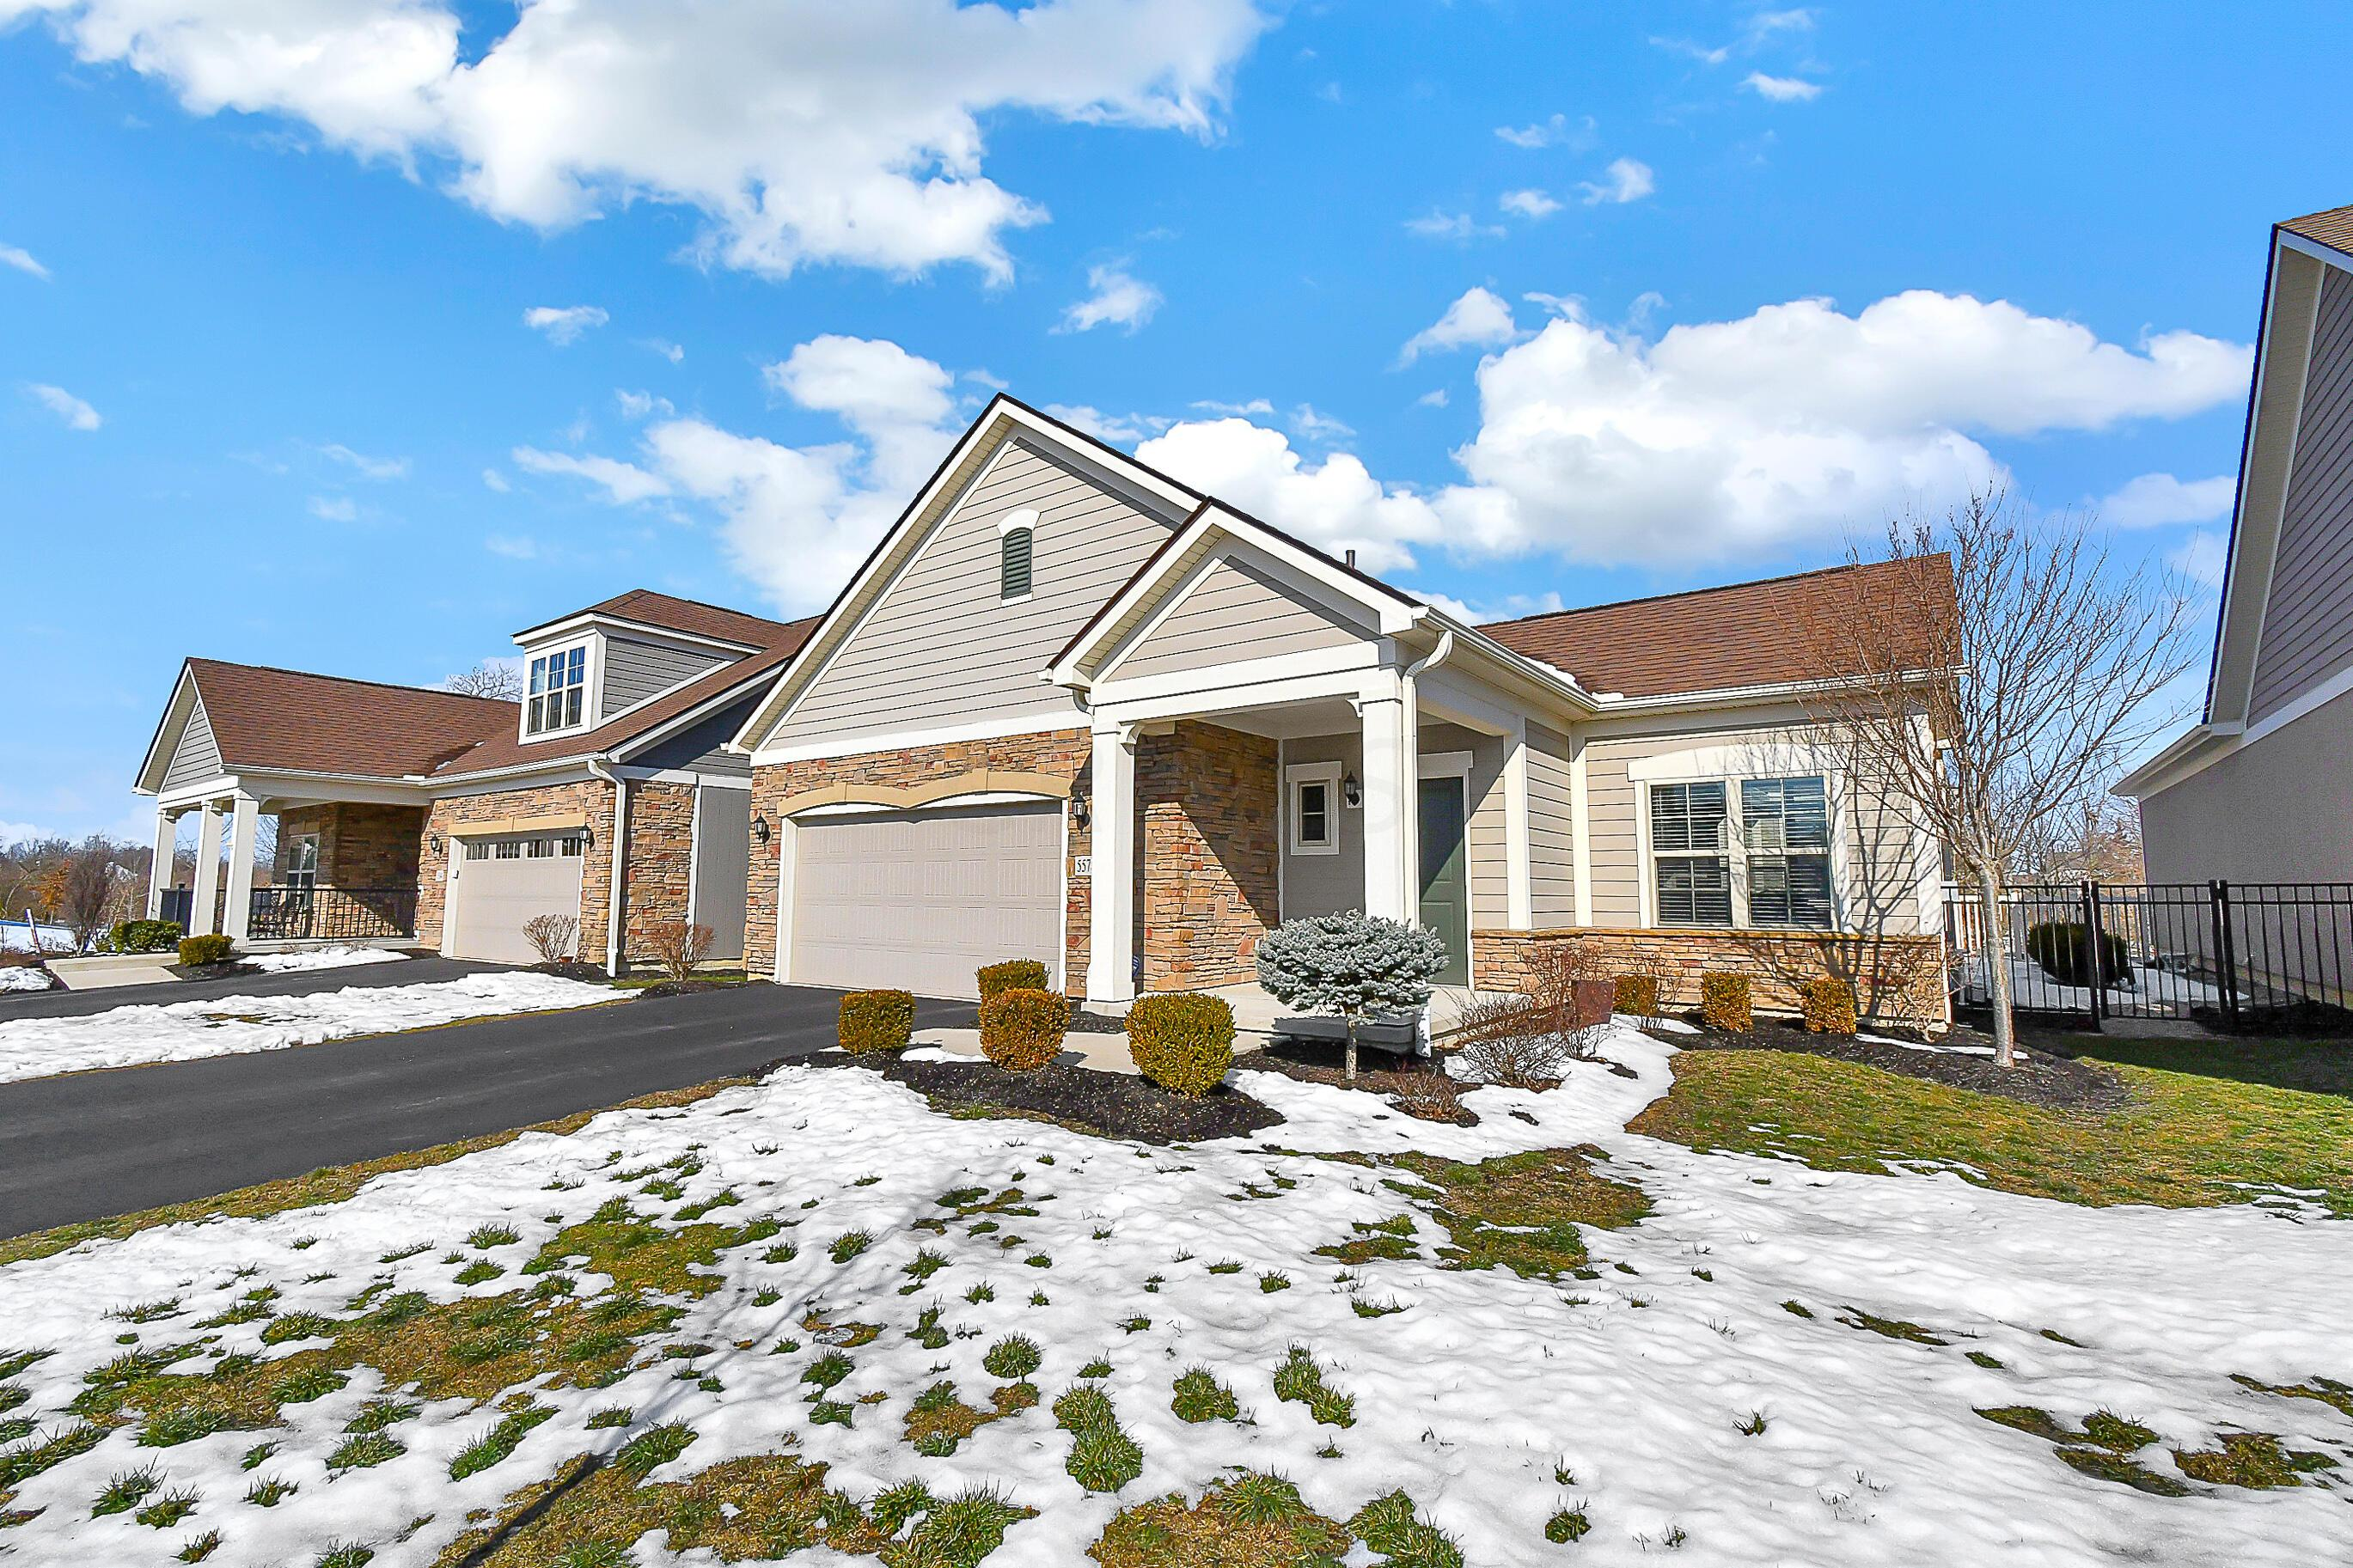 Photo of 5578 Eventing Way, Hilliard, OH 43026